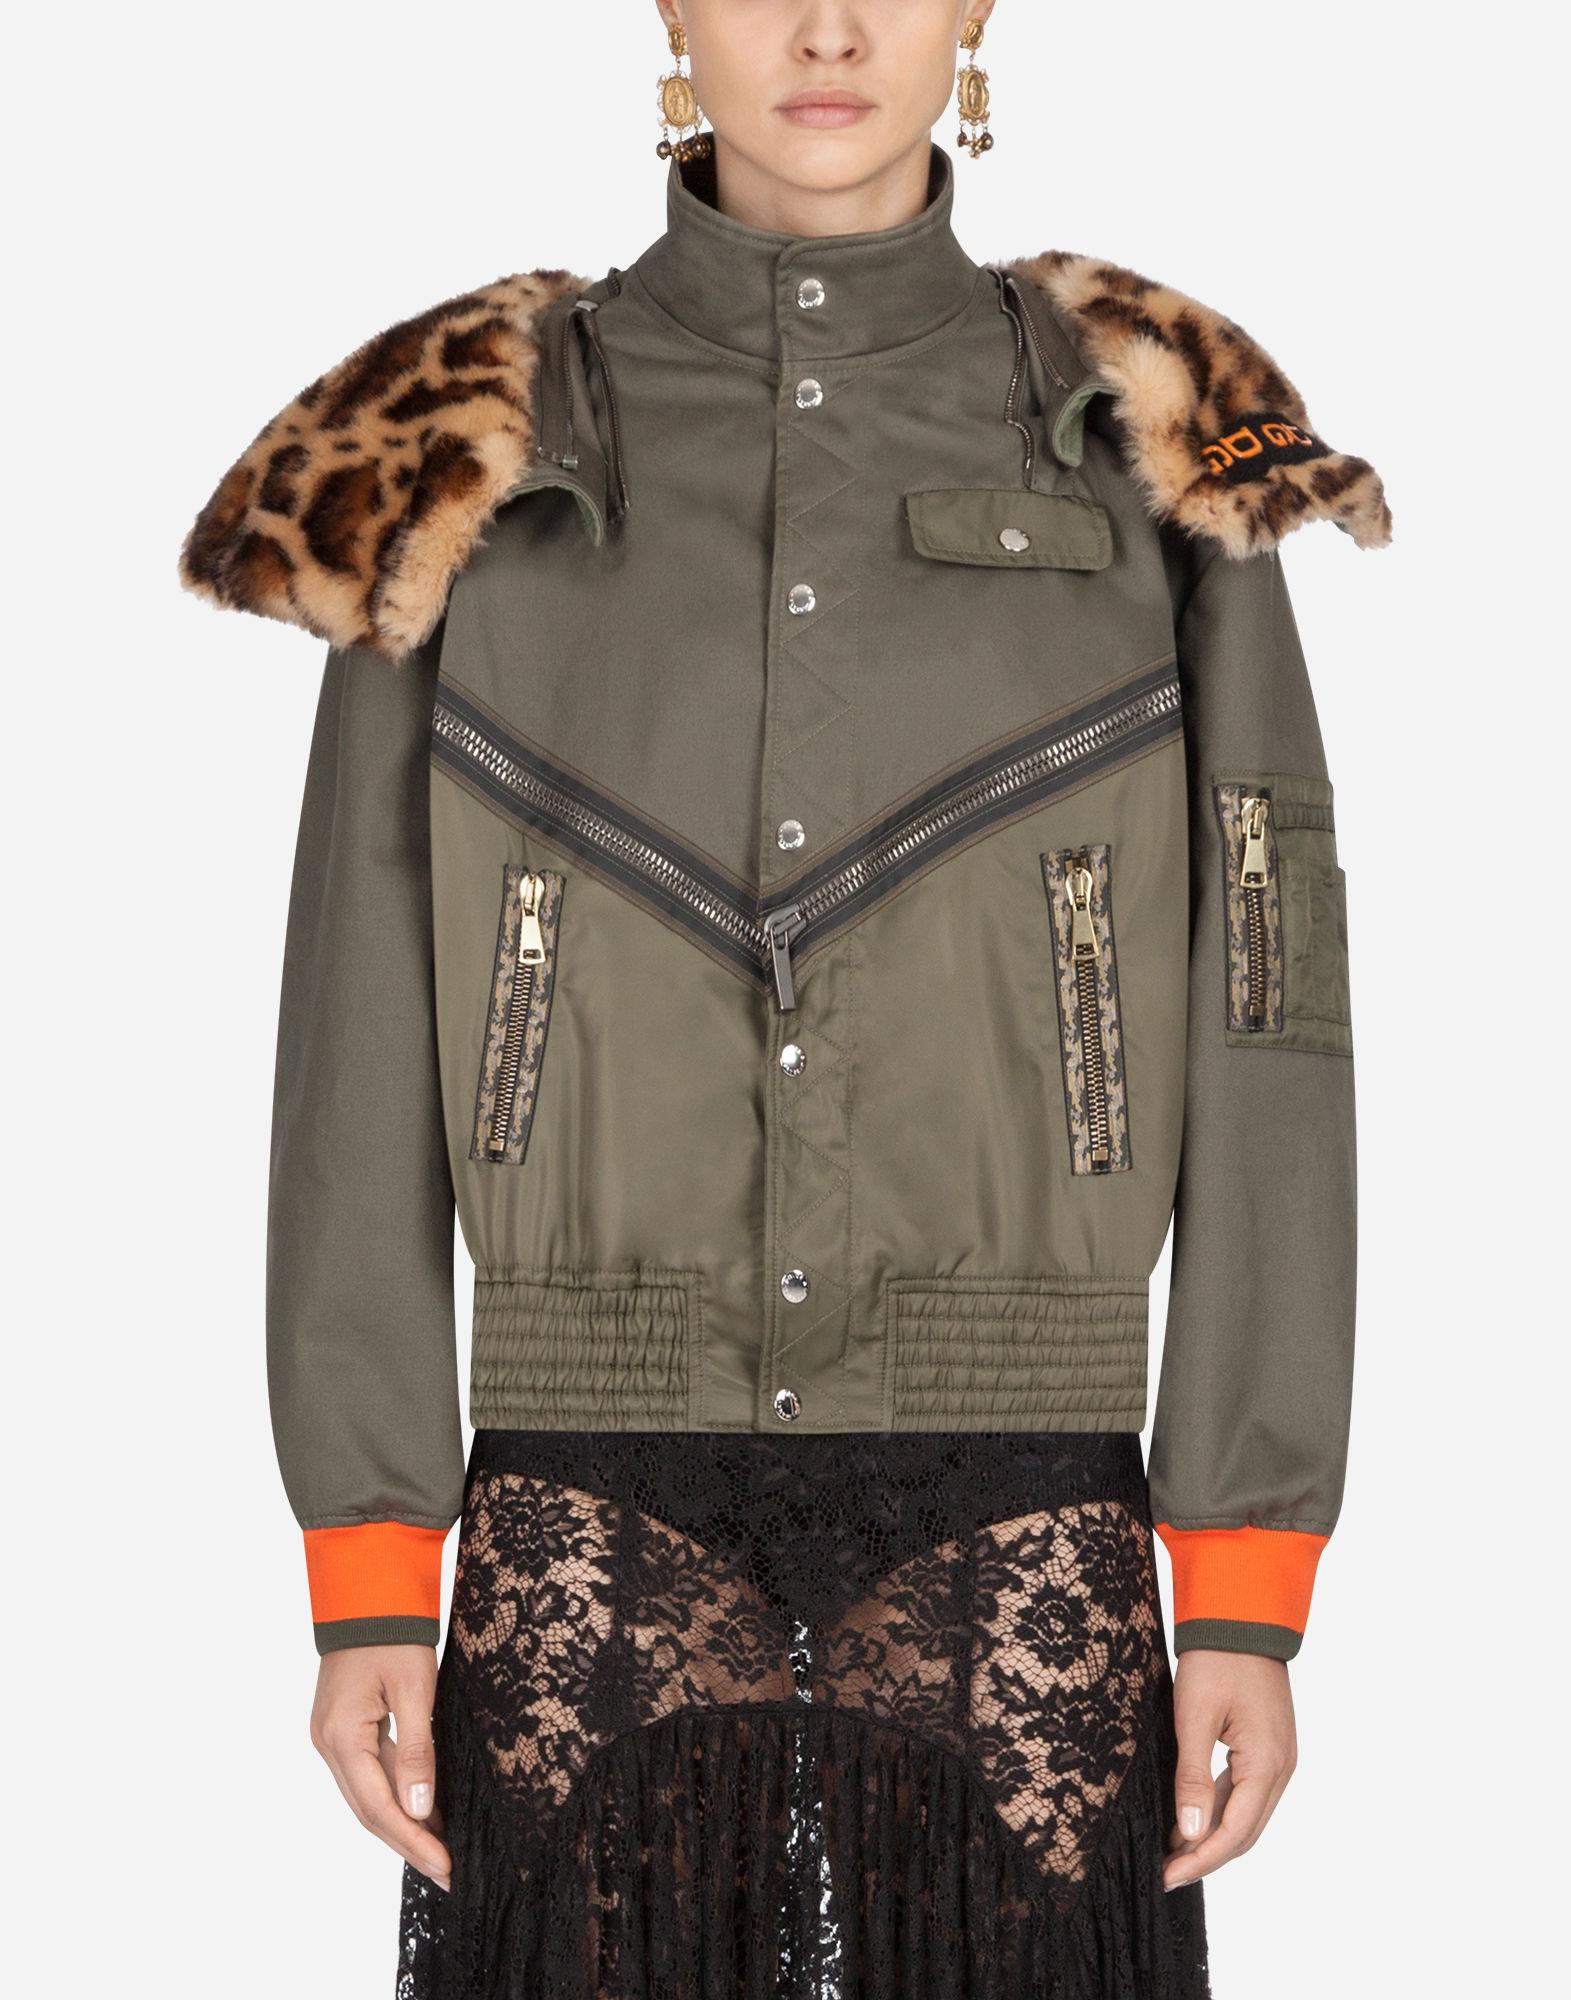 acb324da33a7 Dolce & Gabbana Leopard Print Panelled Bomber Jacket in Green - Save ...